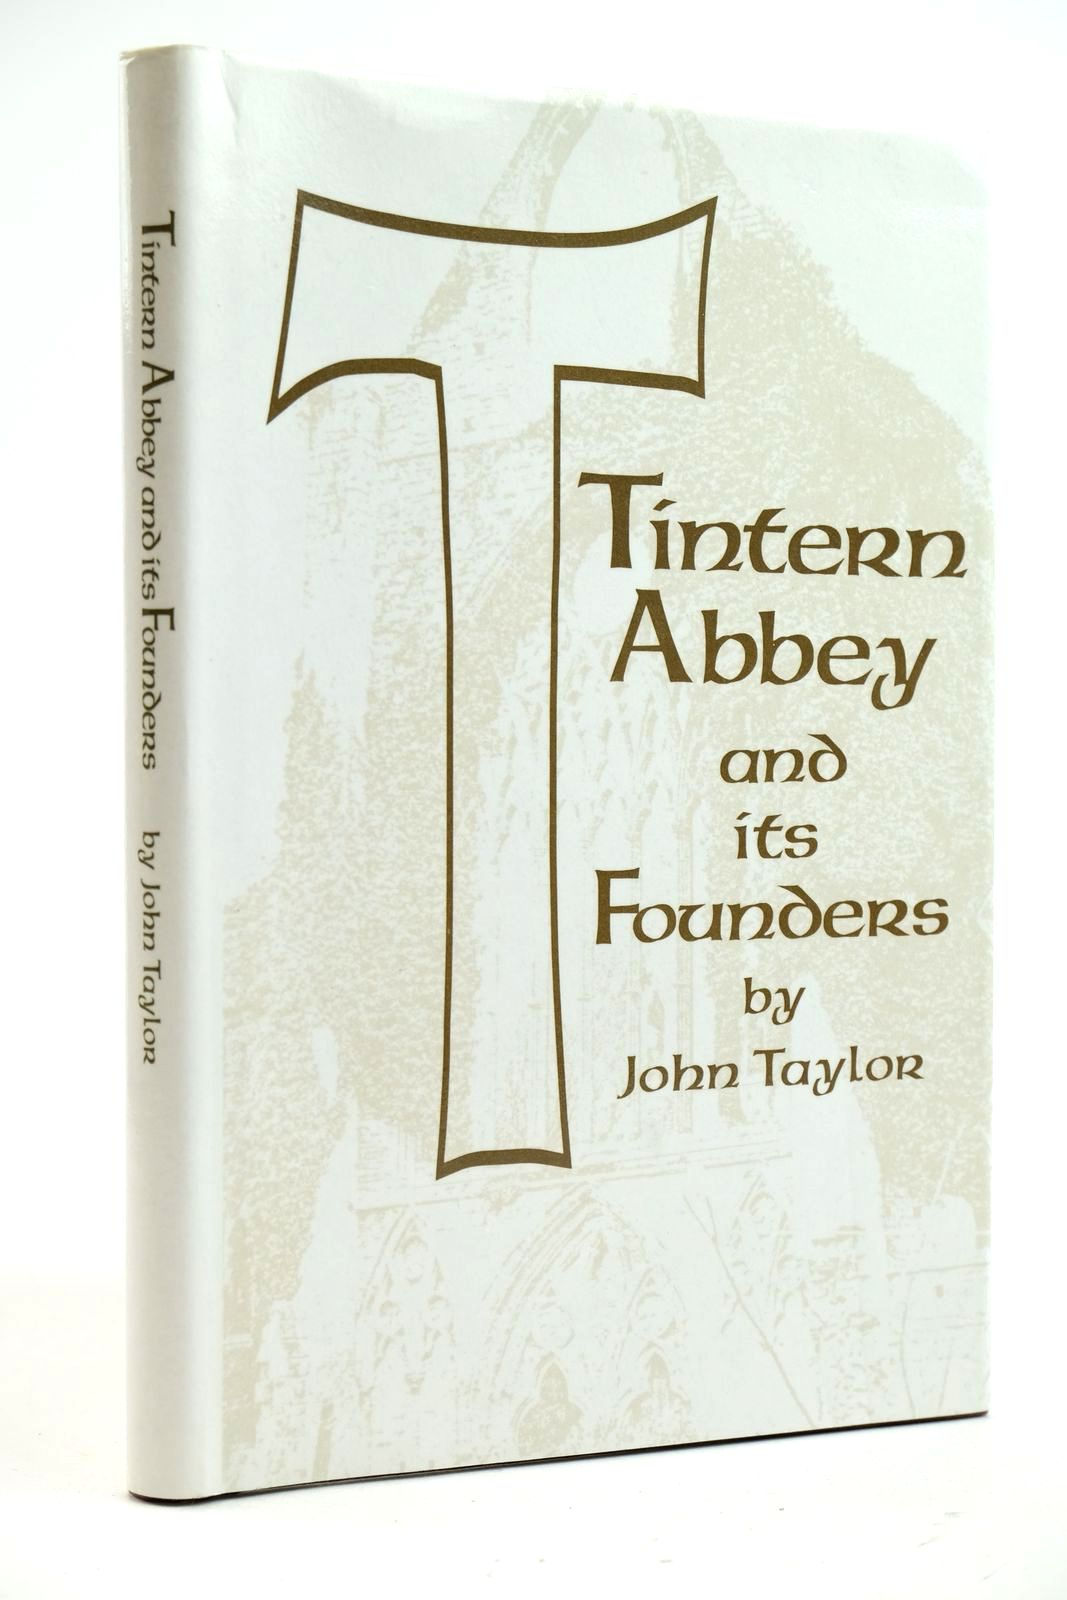 Photo of TINTERN ABBEY AND ITS FOUNDERS written by Taylor, John published by Gwent County Council (STOCK CODE: 2133072)  for sale by Stella & Rose's Books